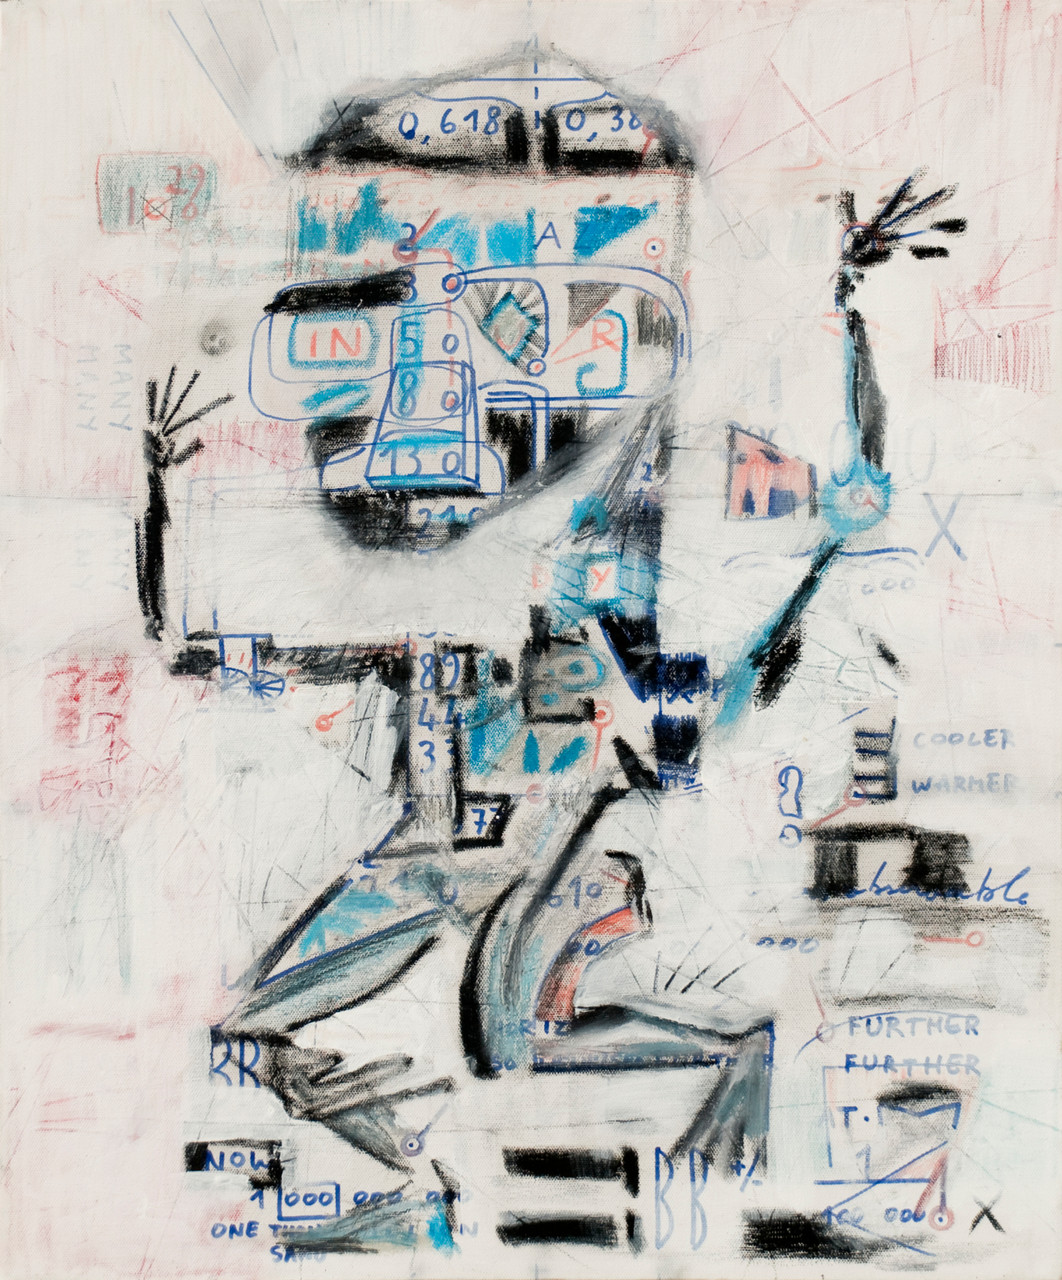 Francois Maxime, Further Further, 2009, Acrylic and mixed media, Canvas, 60x50cm